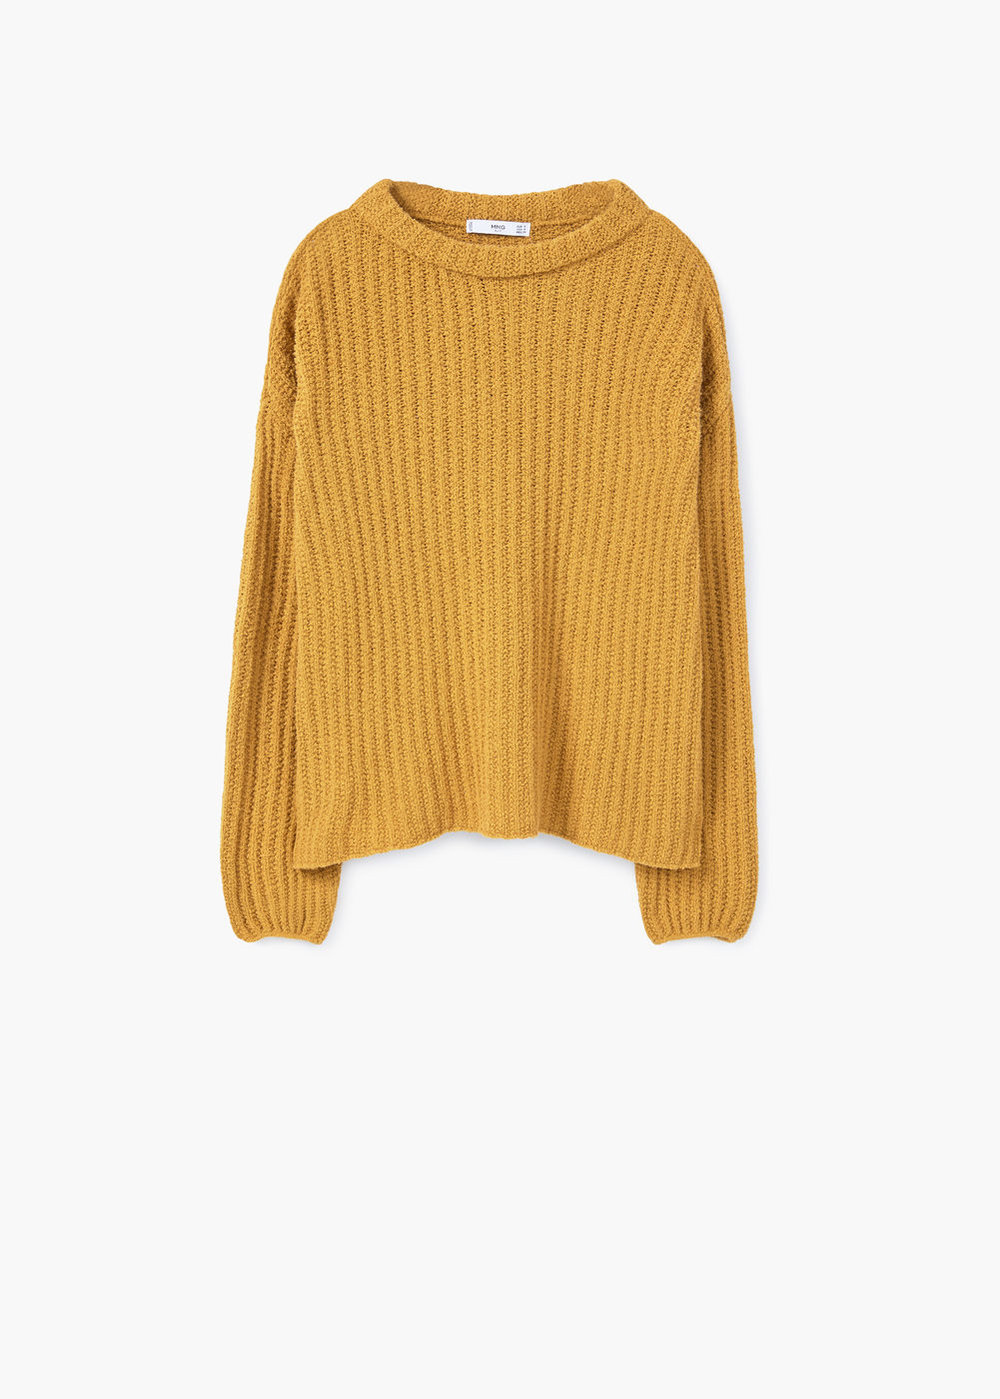 Be ahead of the curve and get   this chunky sweater   in mustard yellow. This hue is so flattering on everyone and it makes you stand out but not in a bad way.